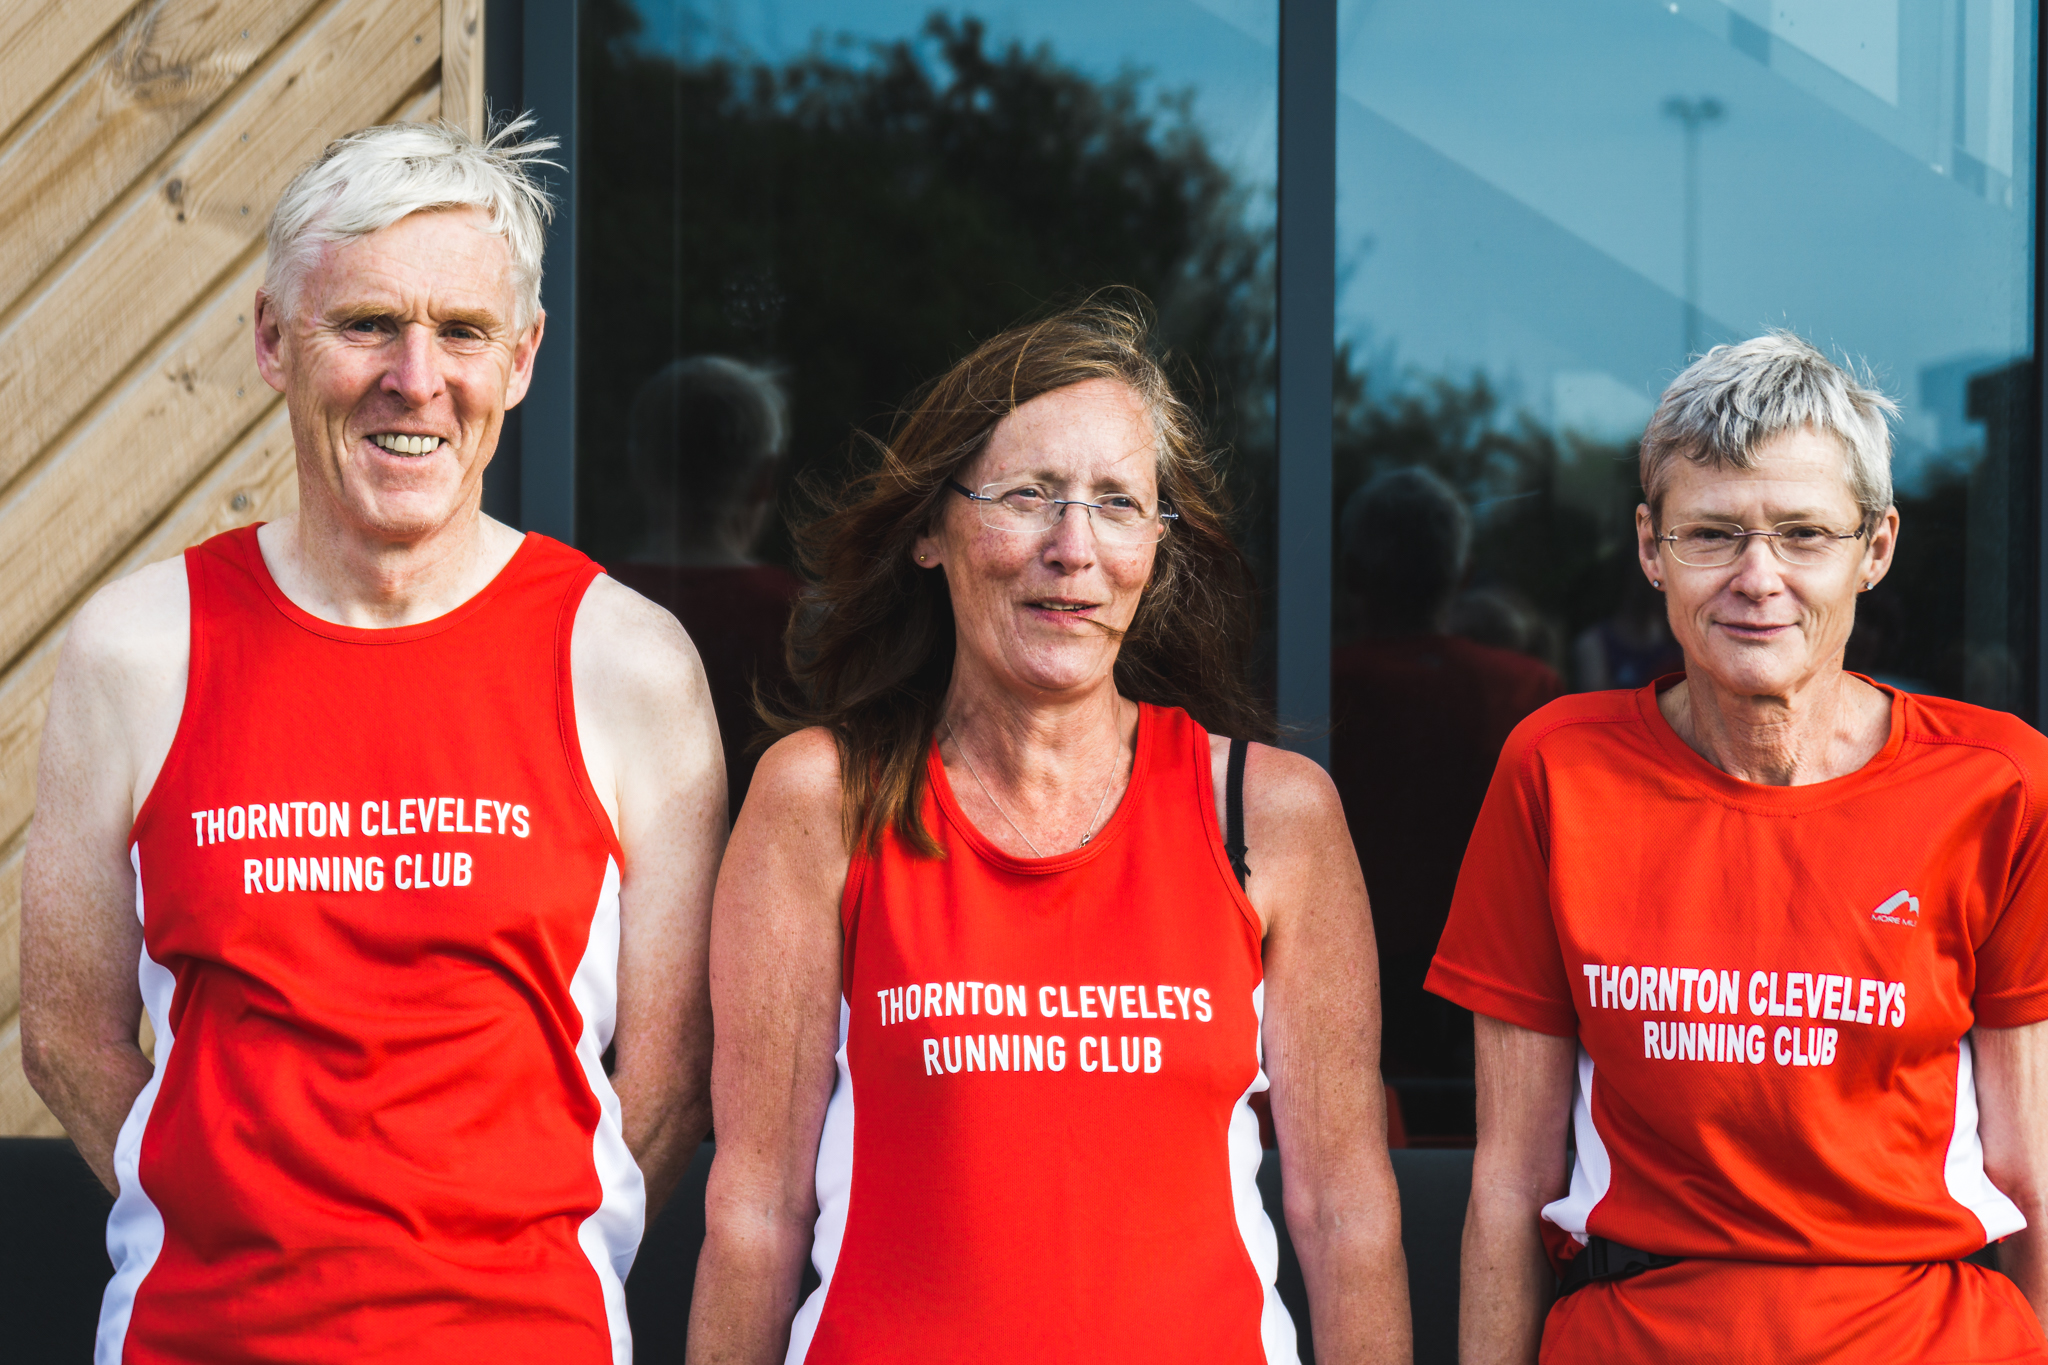 16-06-07 Team photo for Cleveleys and Thornton running club-58.jpg